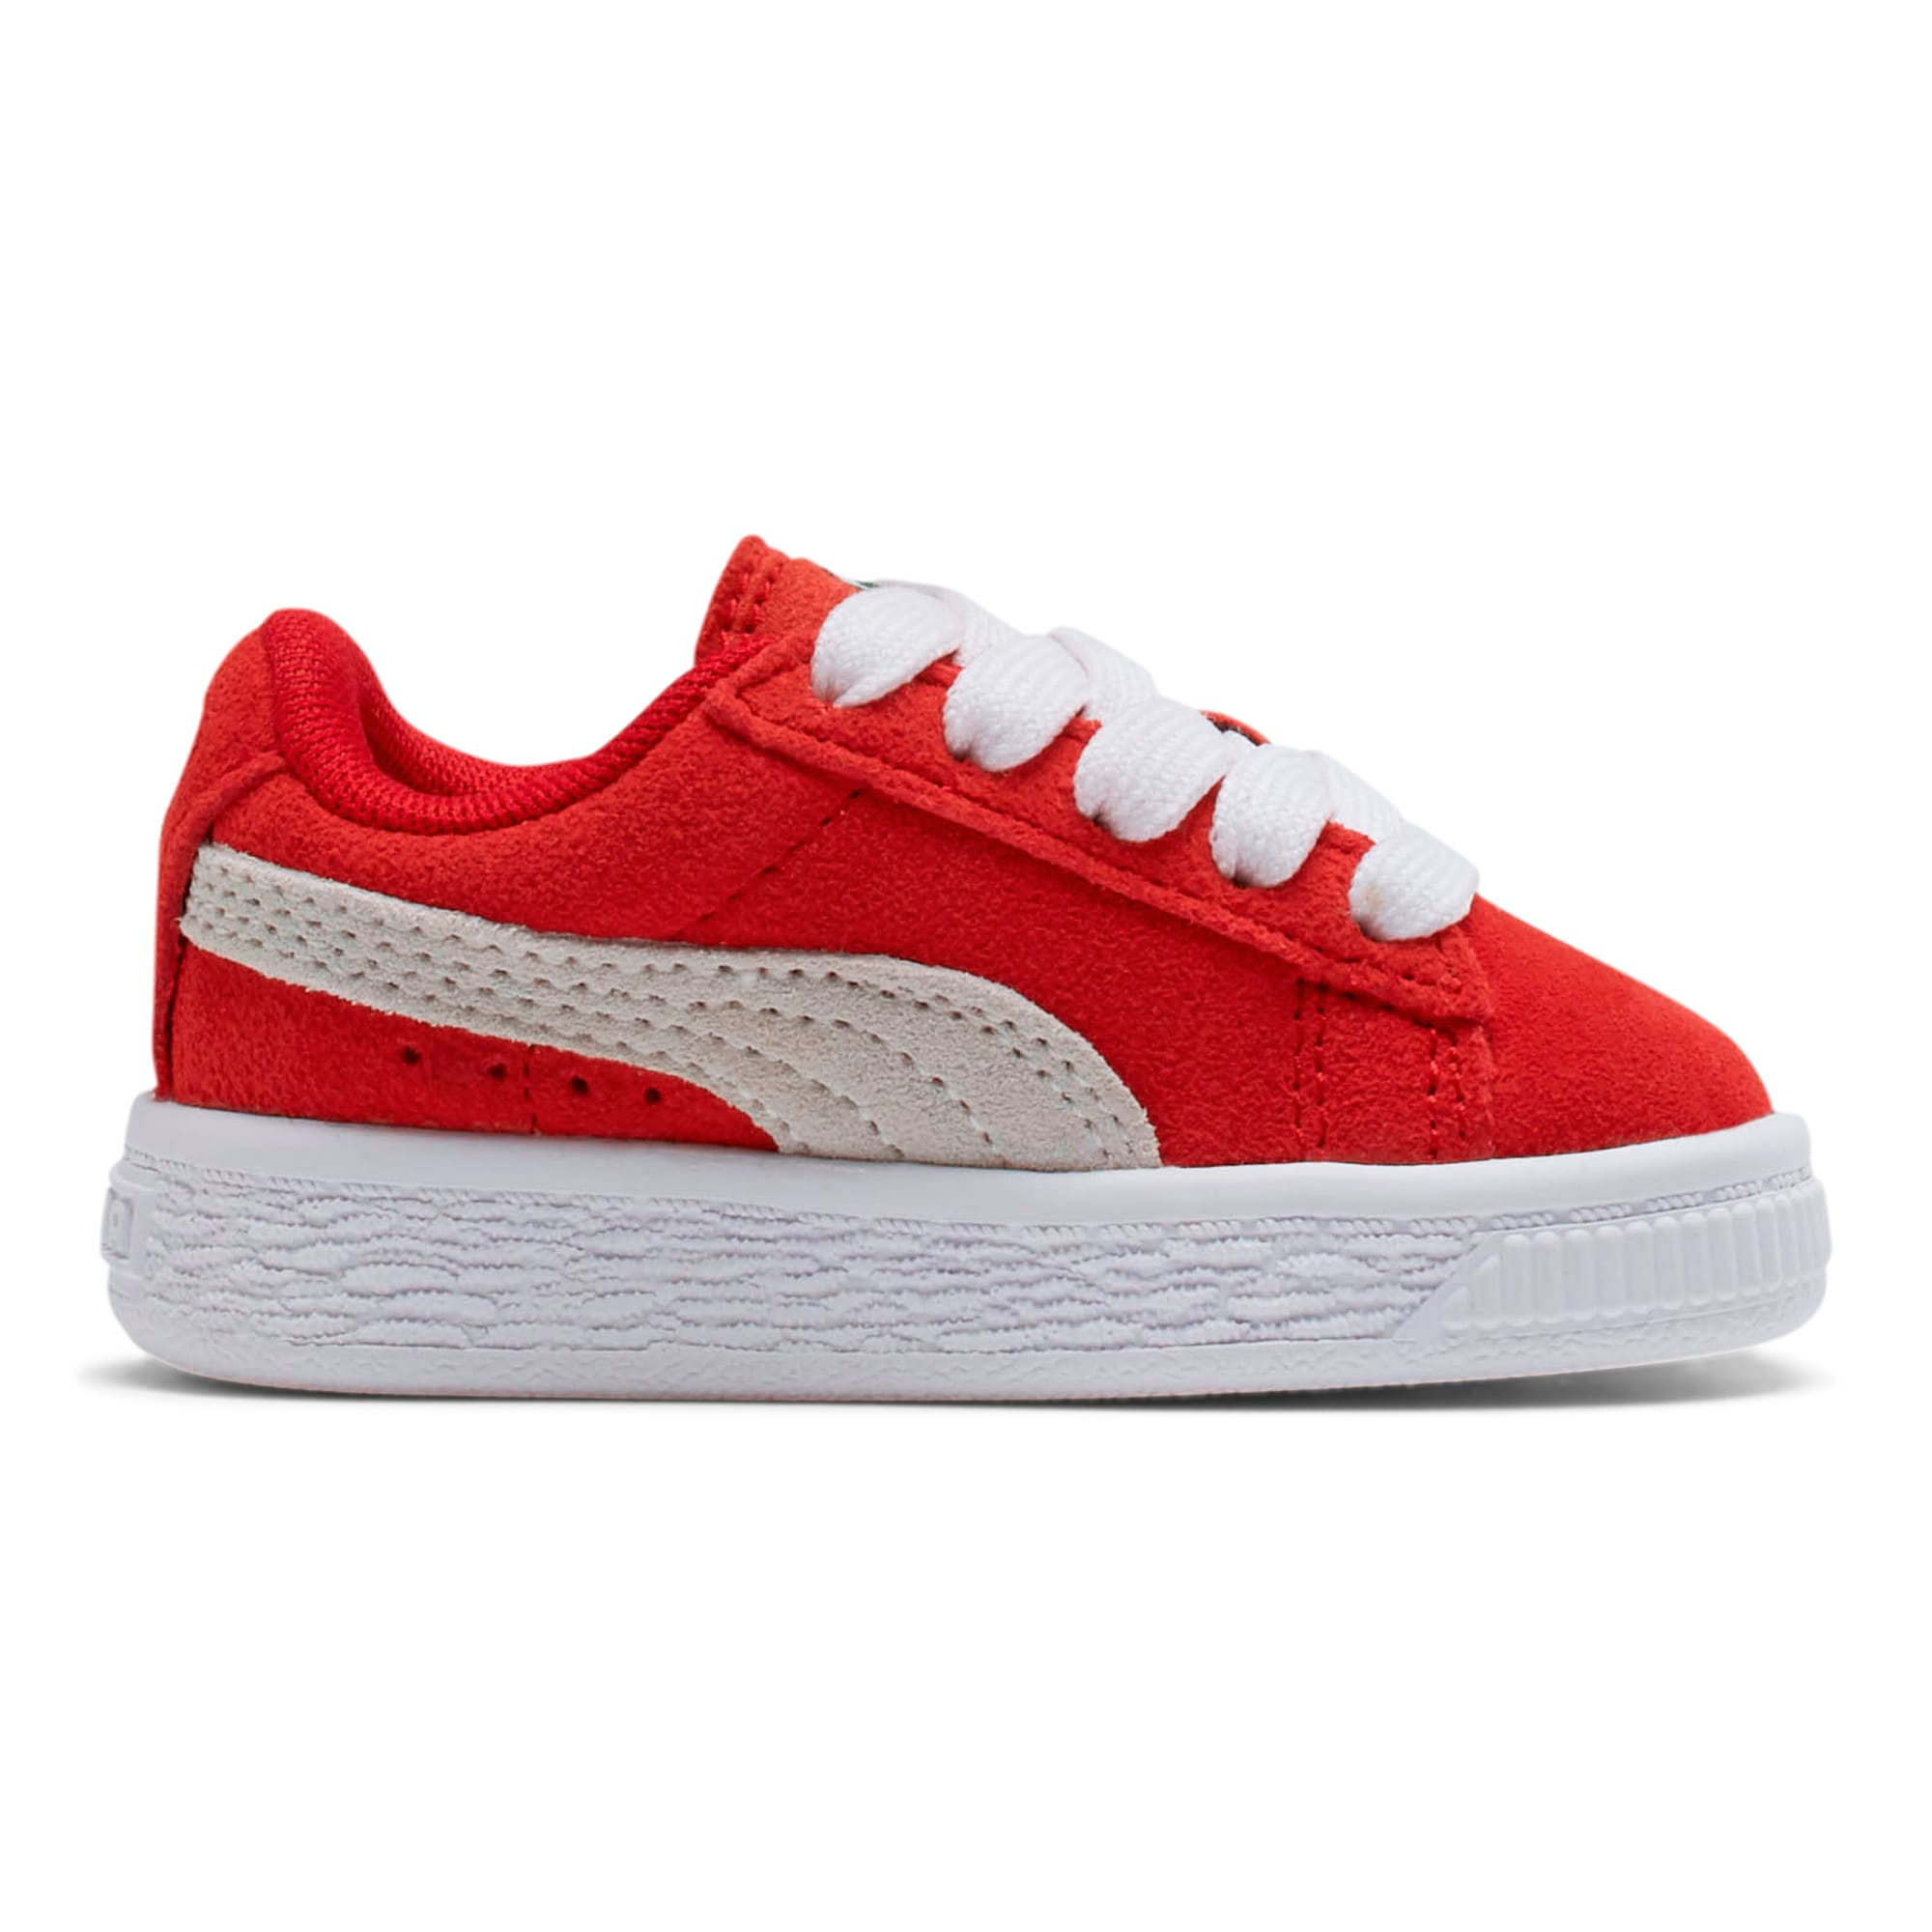 Miniatura 5 de Zapatos Puma Suede para bebés, high risk red-white, mediano